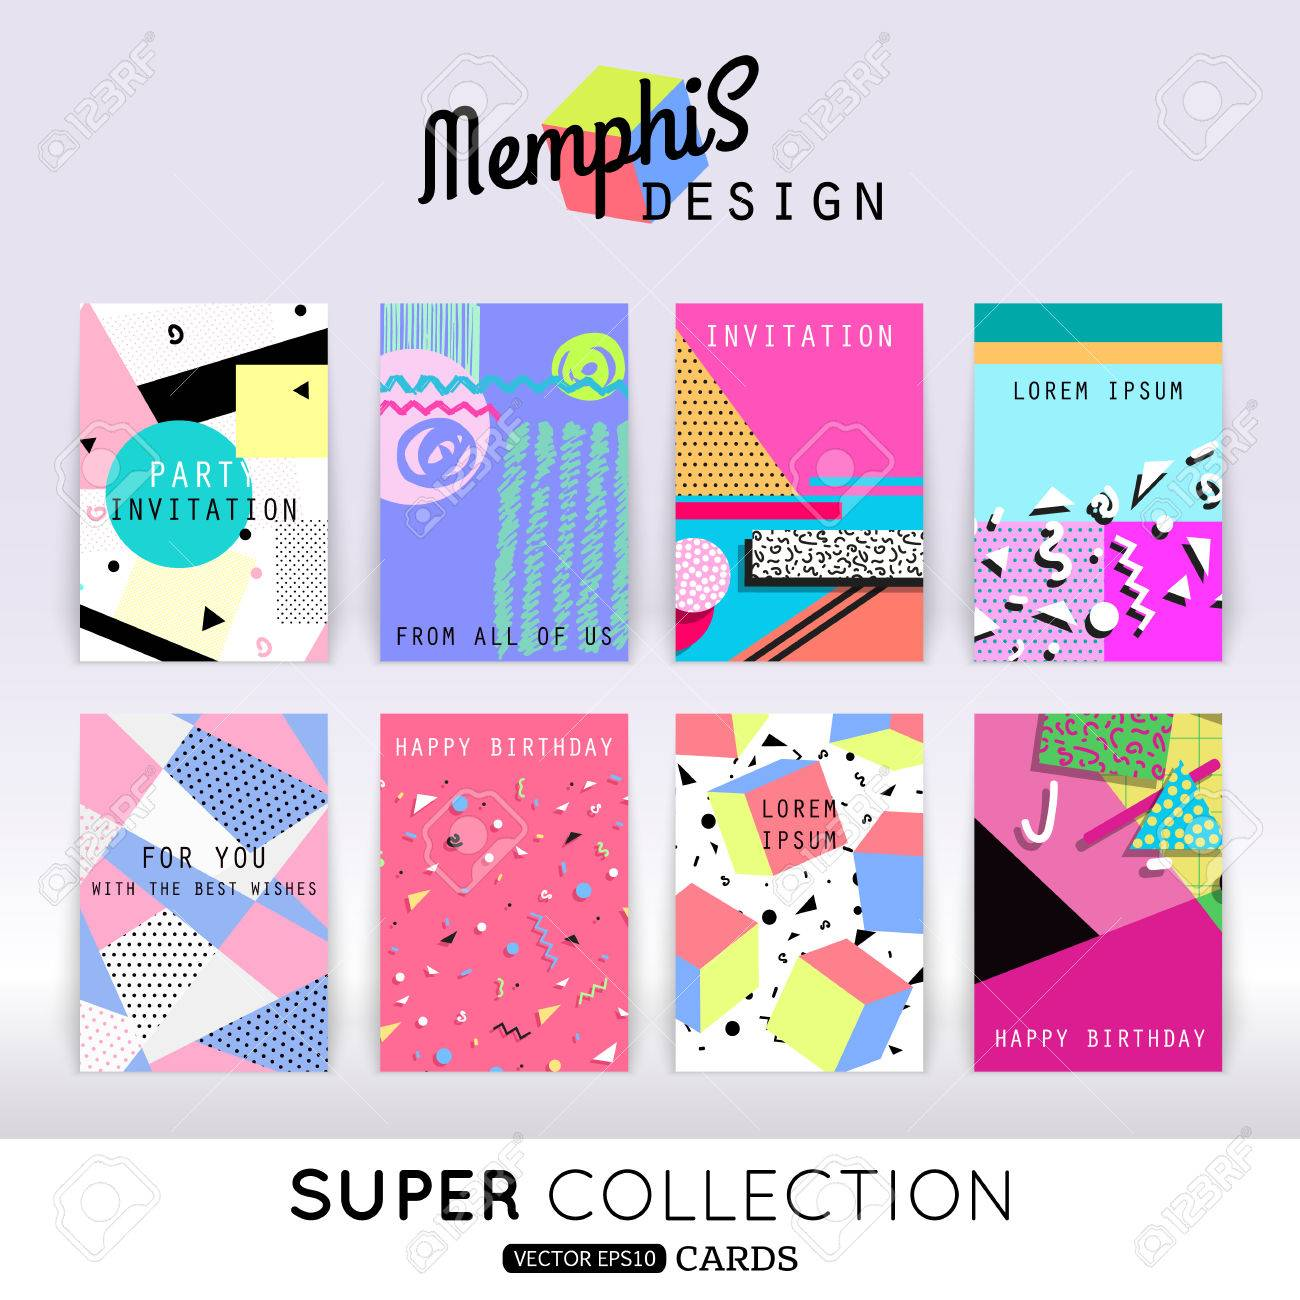 set of memphis card template abstract geometric shapes pattern